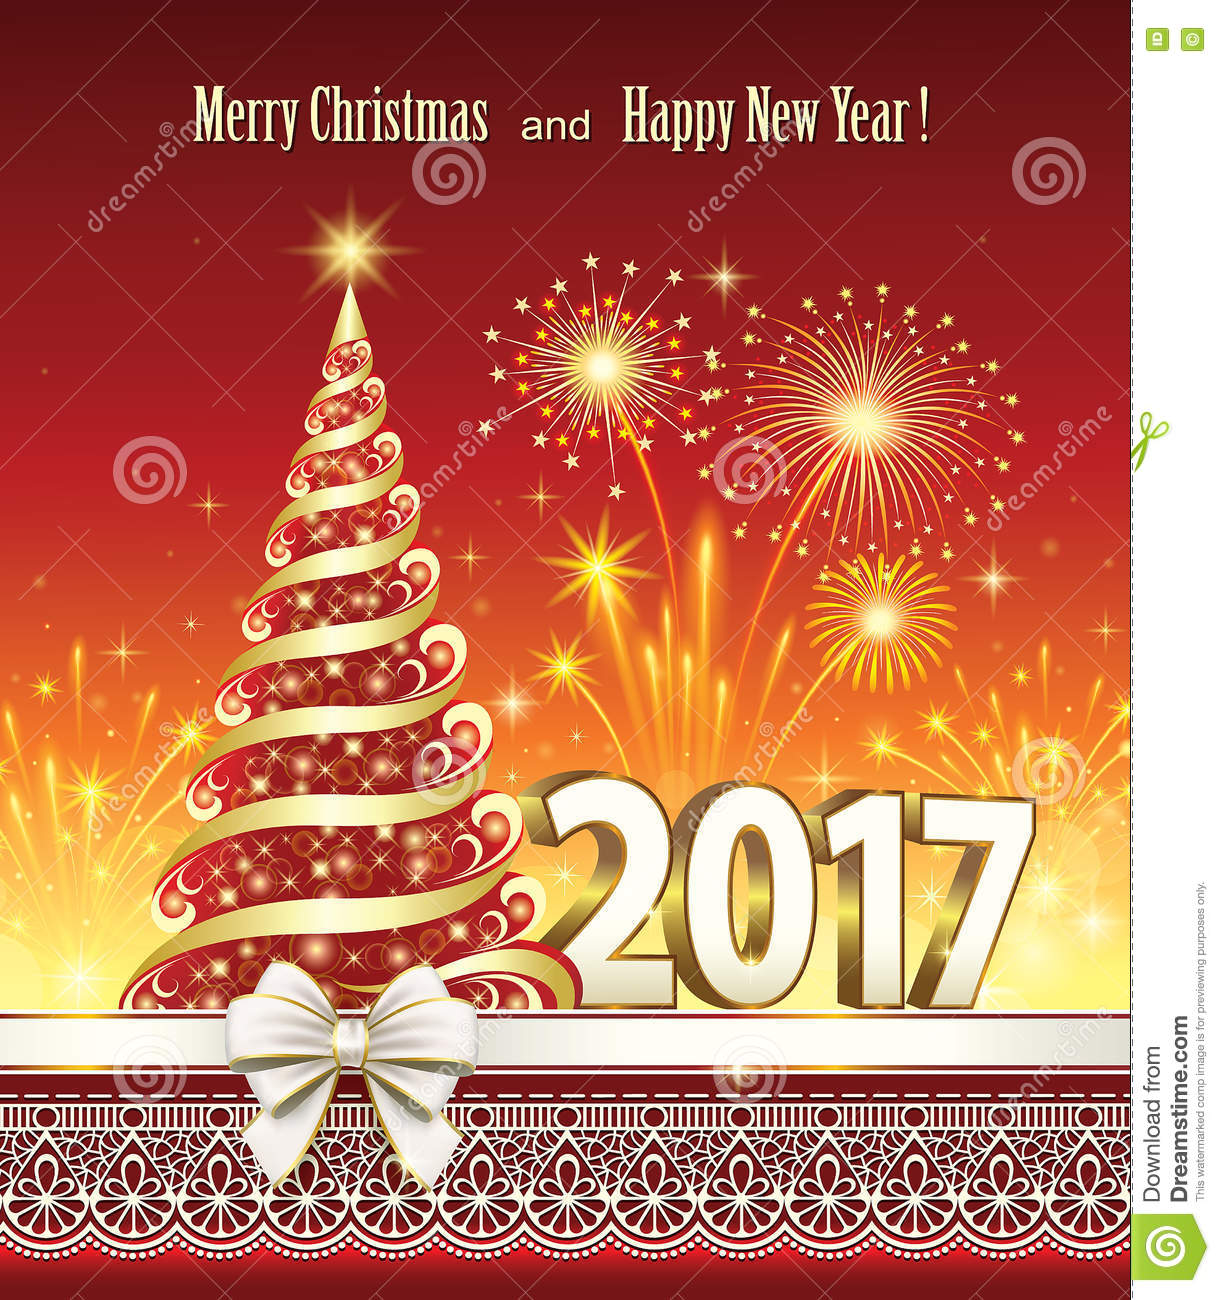 download merry christmas and happy new year 2017 stock vector illustration of christmas fireworks